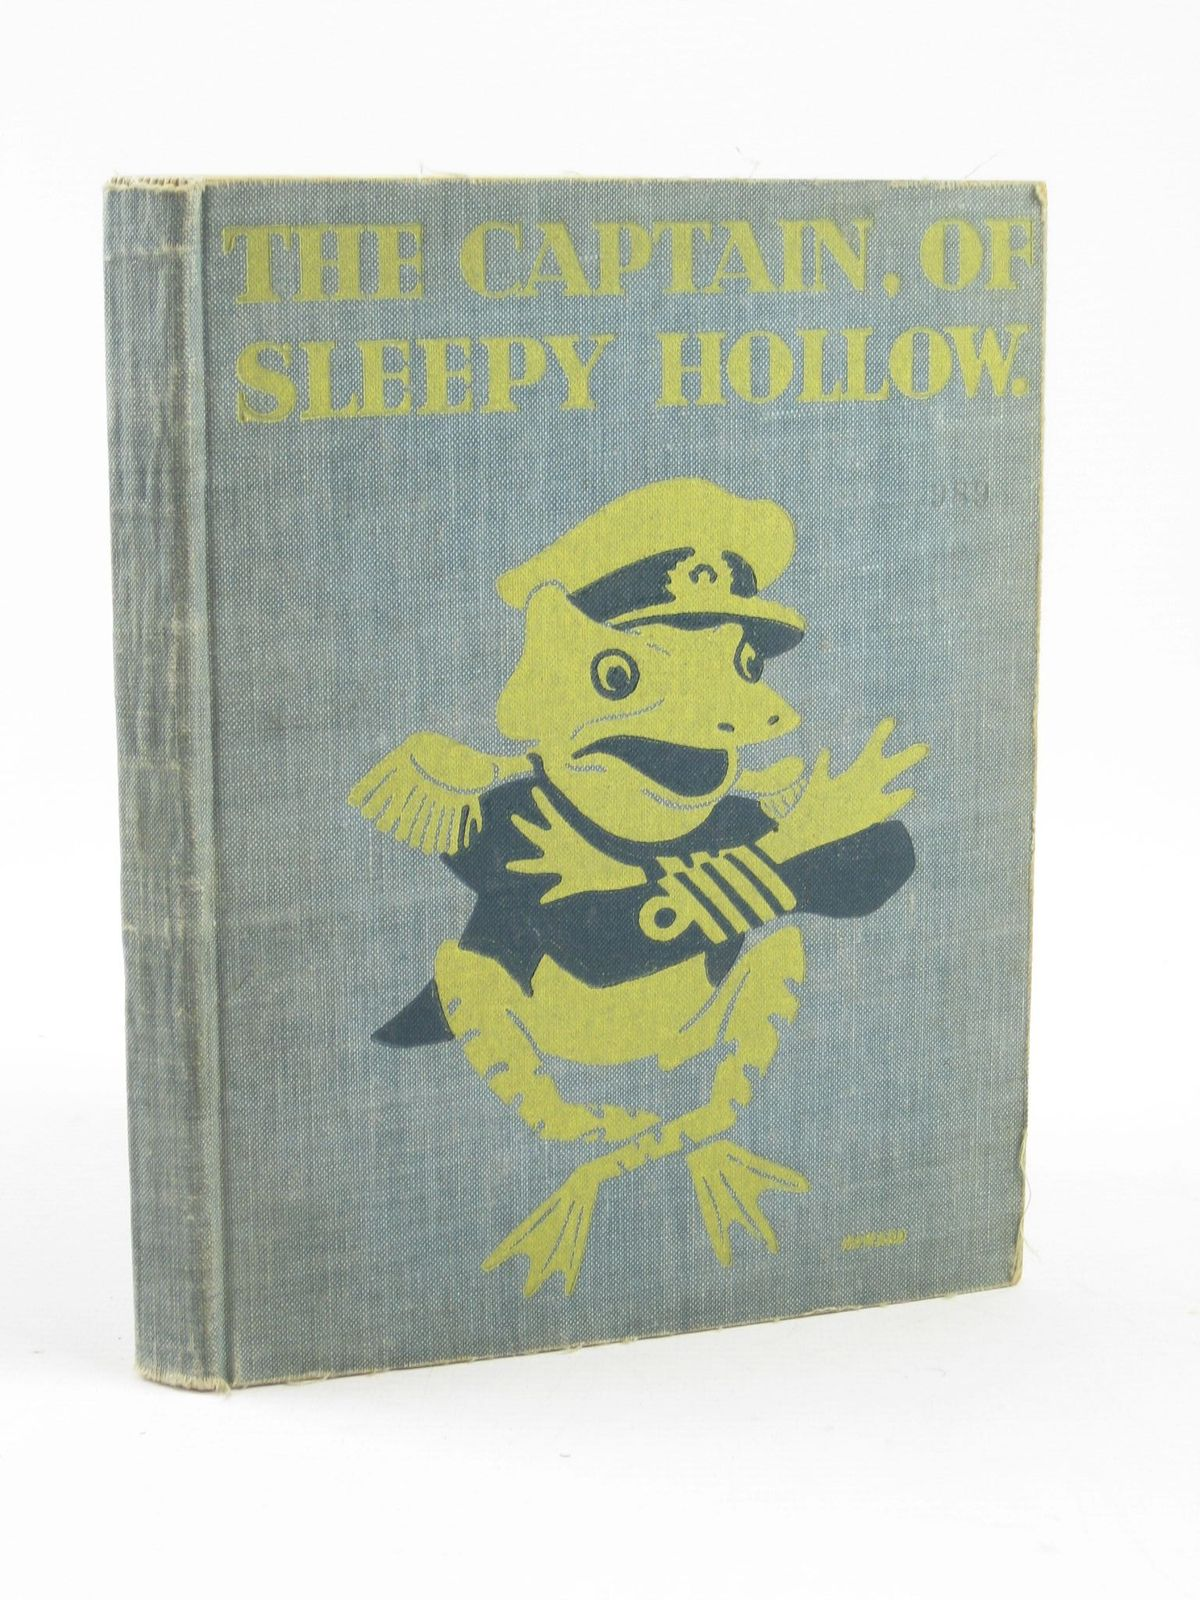 Photo of THE CAPTAIN, OF SLEEPY HOLLOW written by Gunton, T. Payten illustrated by Thorpe, L published by The Grant Educational Co. Ltd. (STOCK CODE: 1501856)  for sale by Stella & Rose's Books